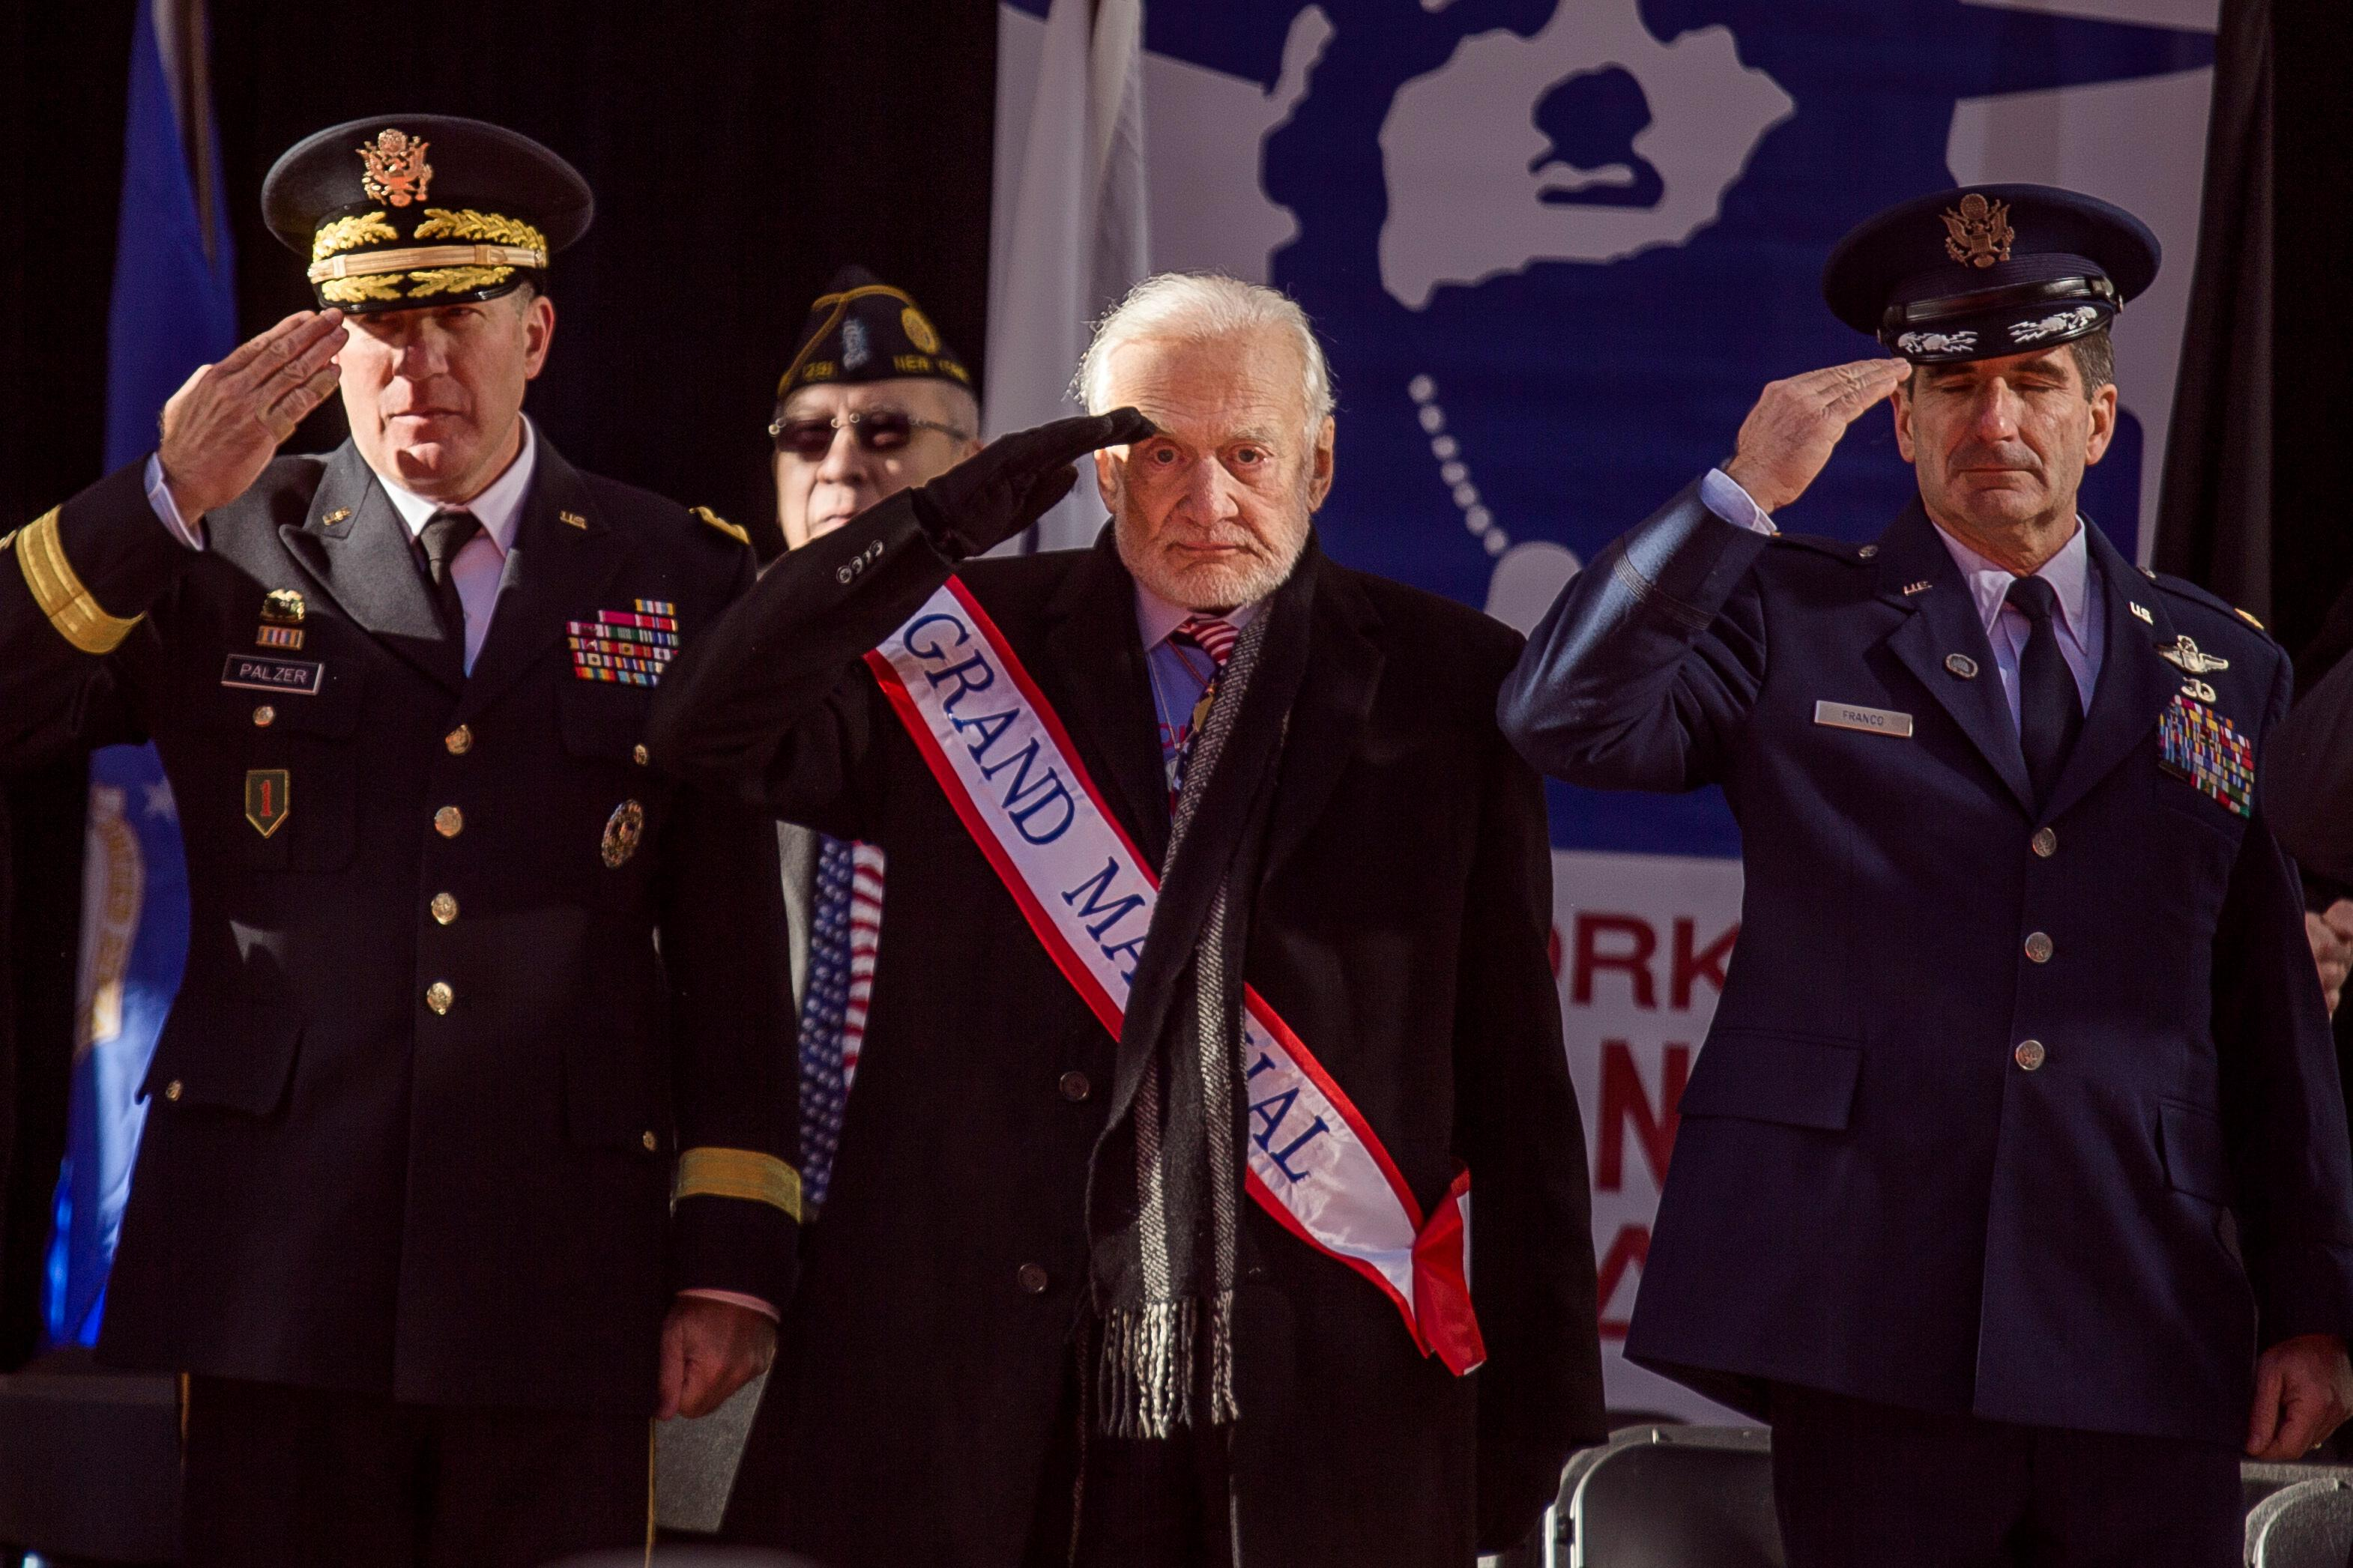 Former astronaut Buzz Aldrin, center,salutes during the annual Veterans Day parade in New York, Saturday, Nov. 11, 2017. Aldrin served as Grand Marshal as he joined Mayor Bill de Blasio and others at the city's parade. (AP Photo/Andres Kudacki)